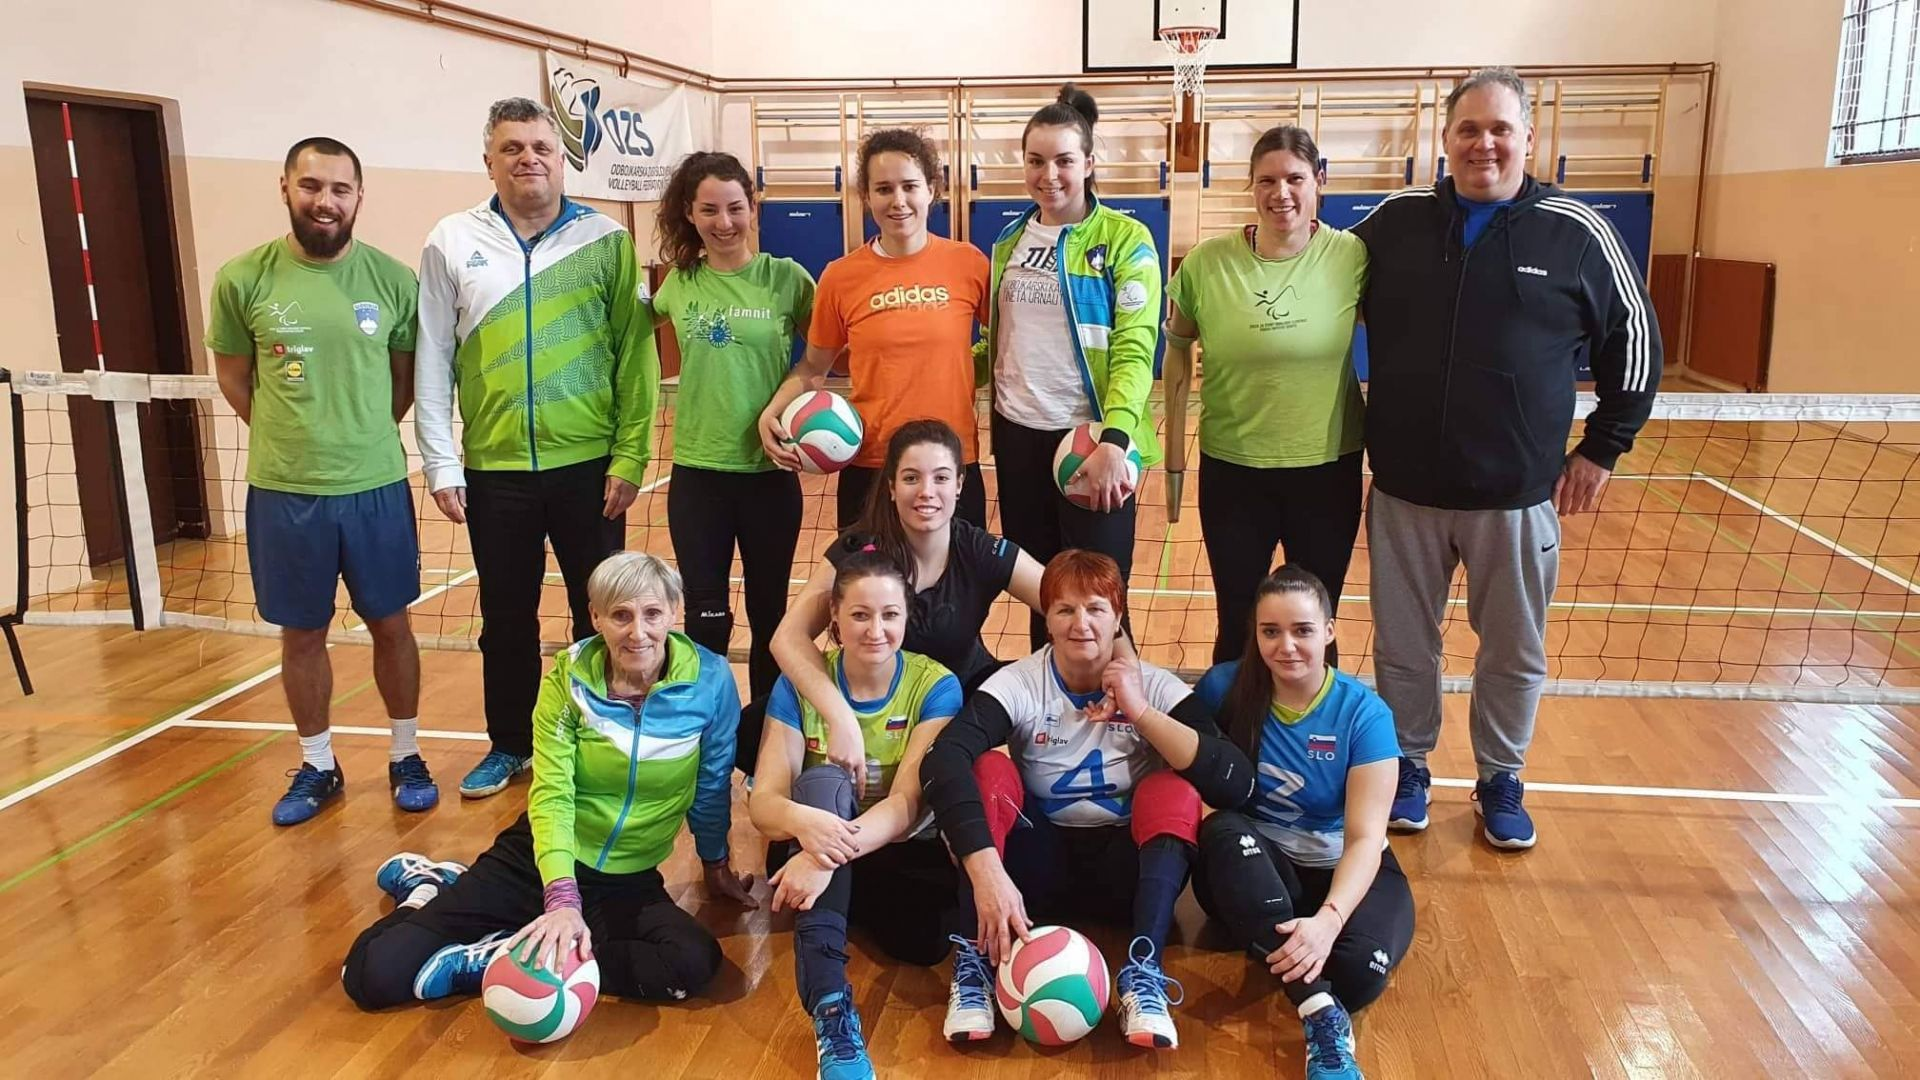 SLOpara volley